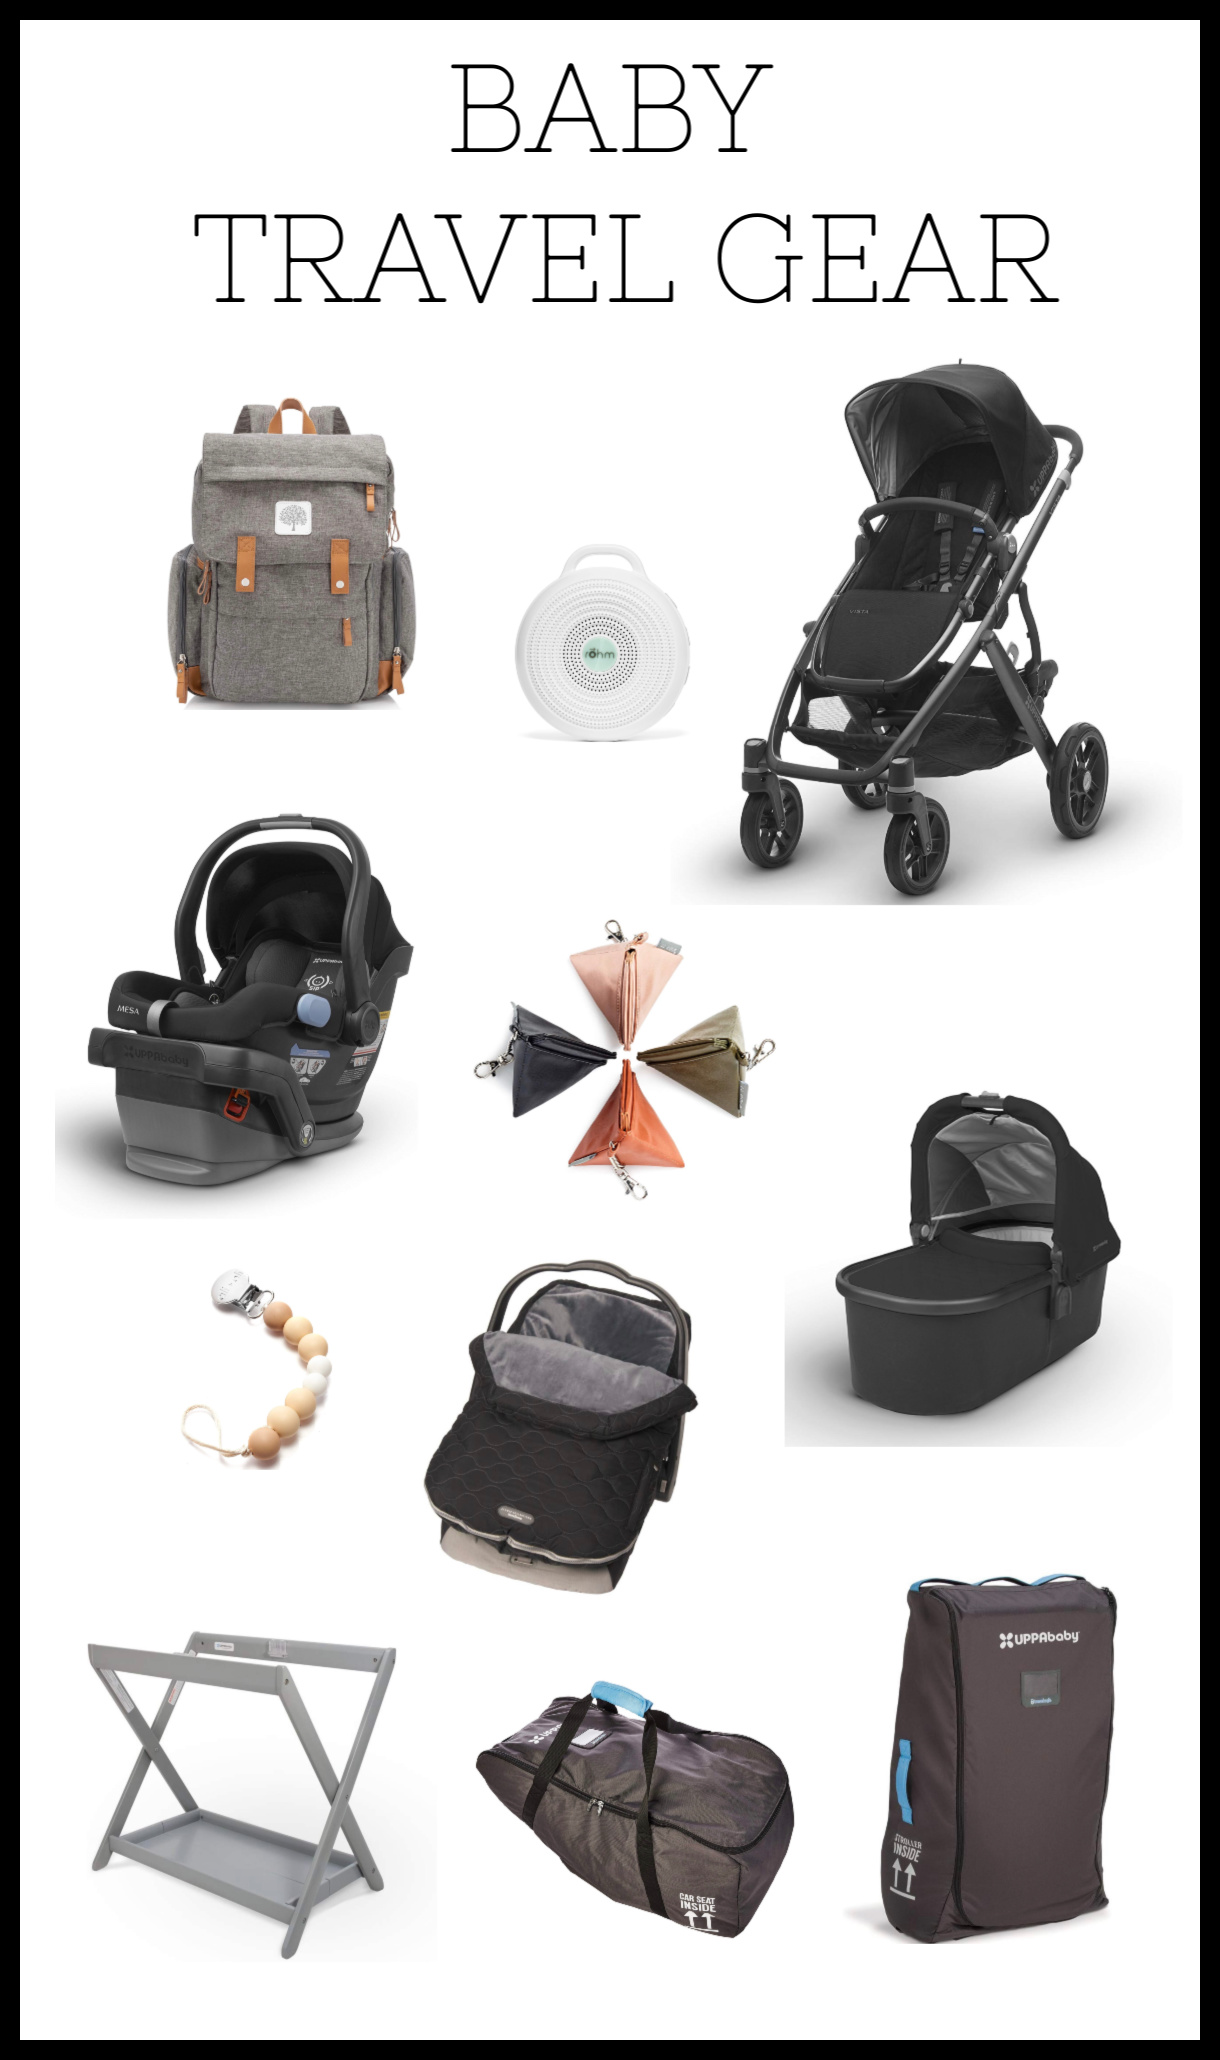 Baby Travel Gear (1).jpg